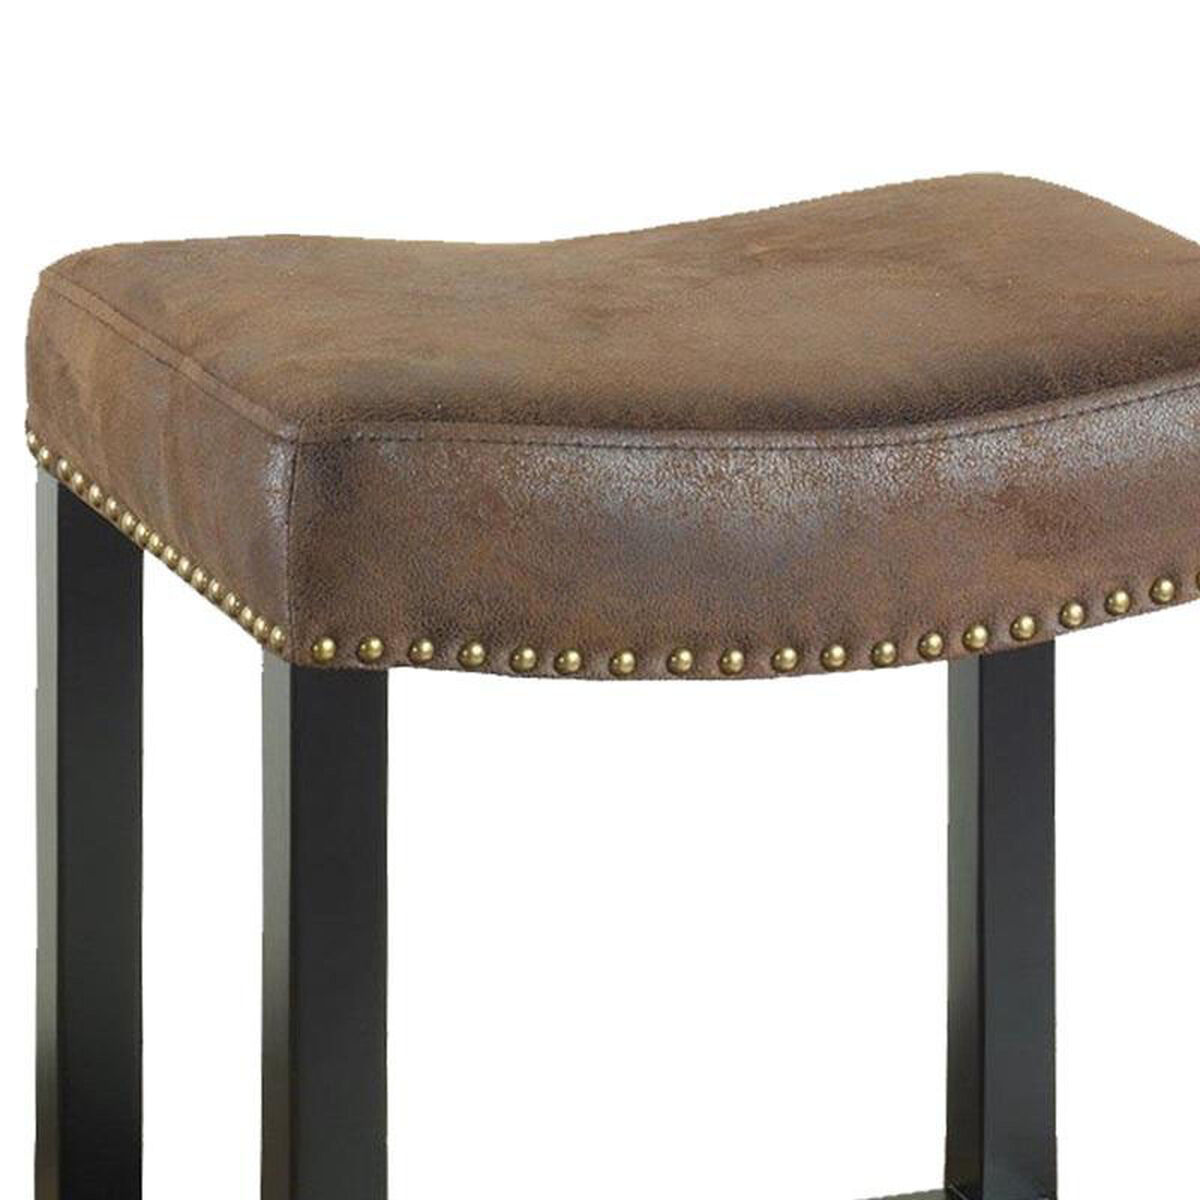 Our Tudor 26 H Backless Counter Stool With Fabric Upholstered Seat And Nailhead Trim